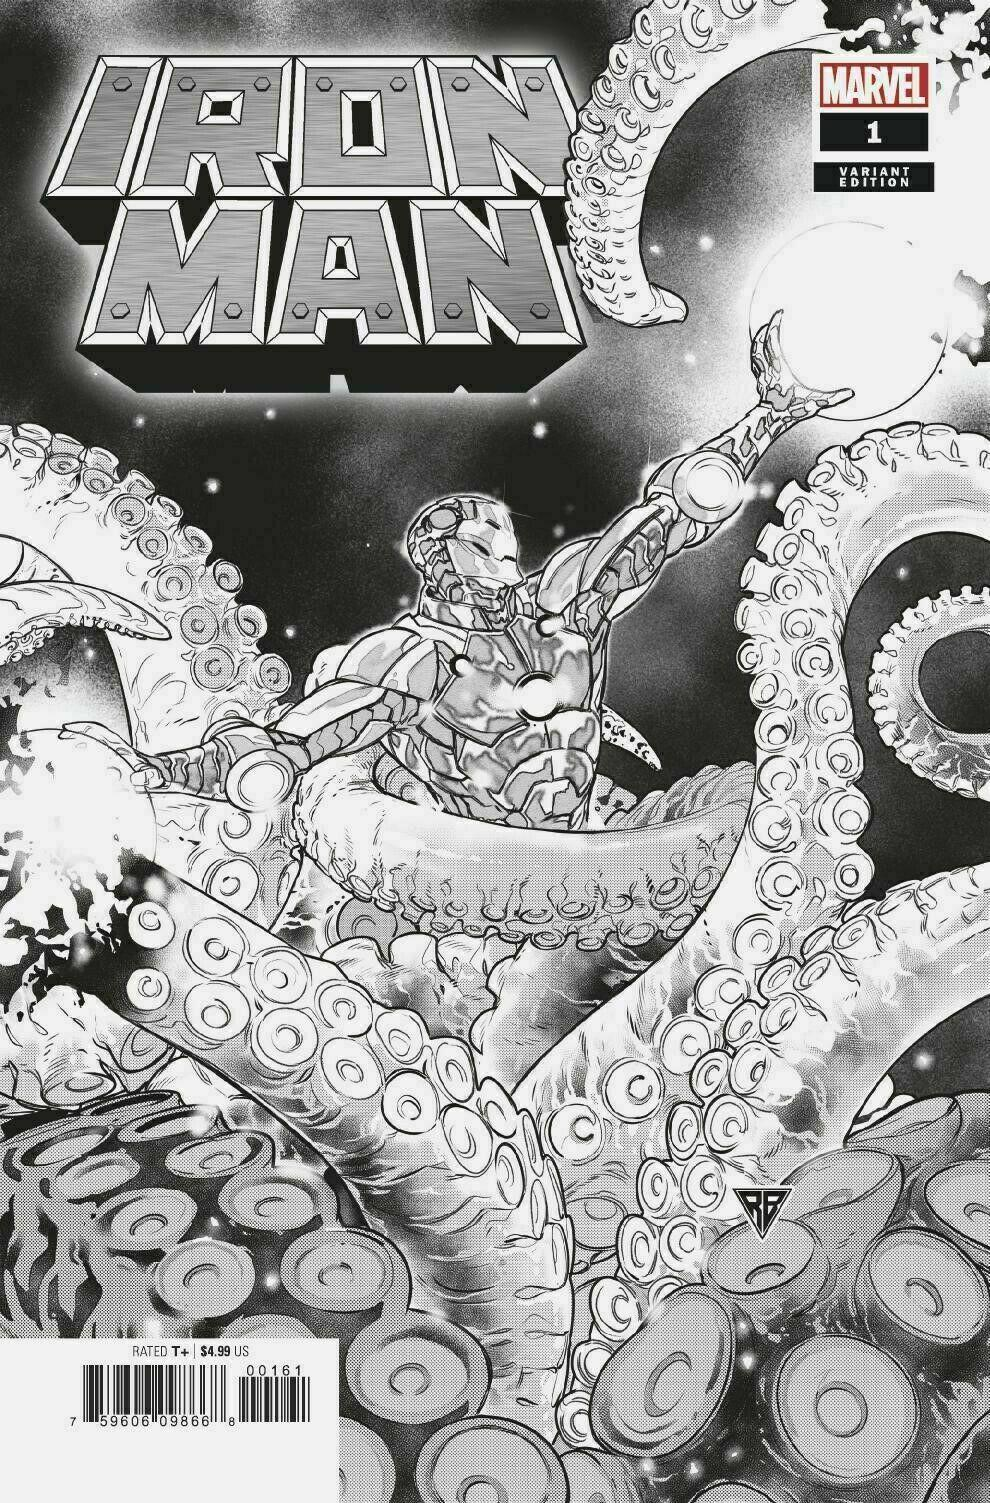 IRON MAN #1 SILVA LAUNCH SKETCH VARIANT